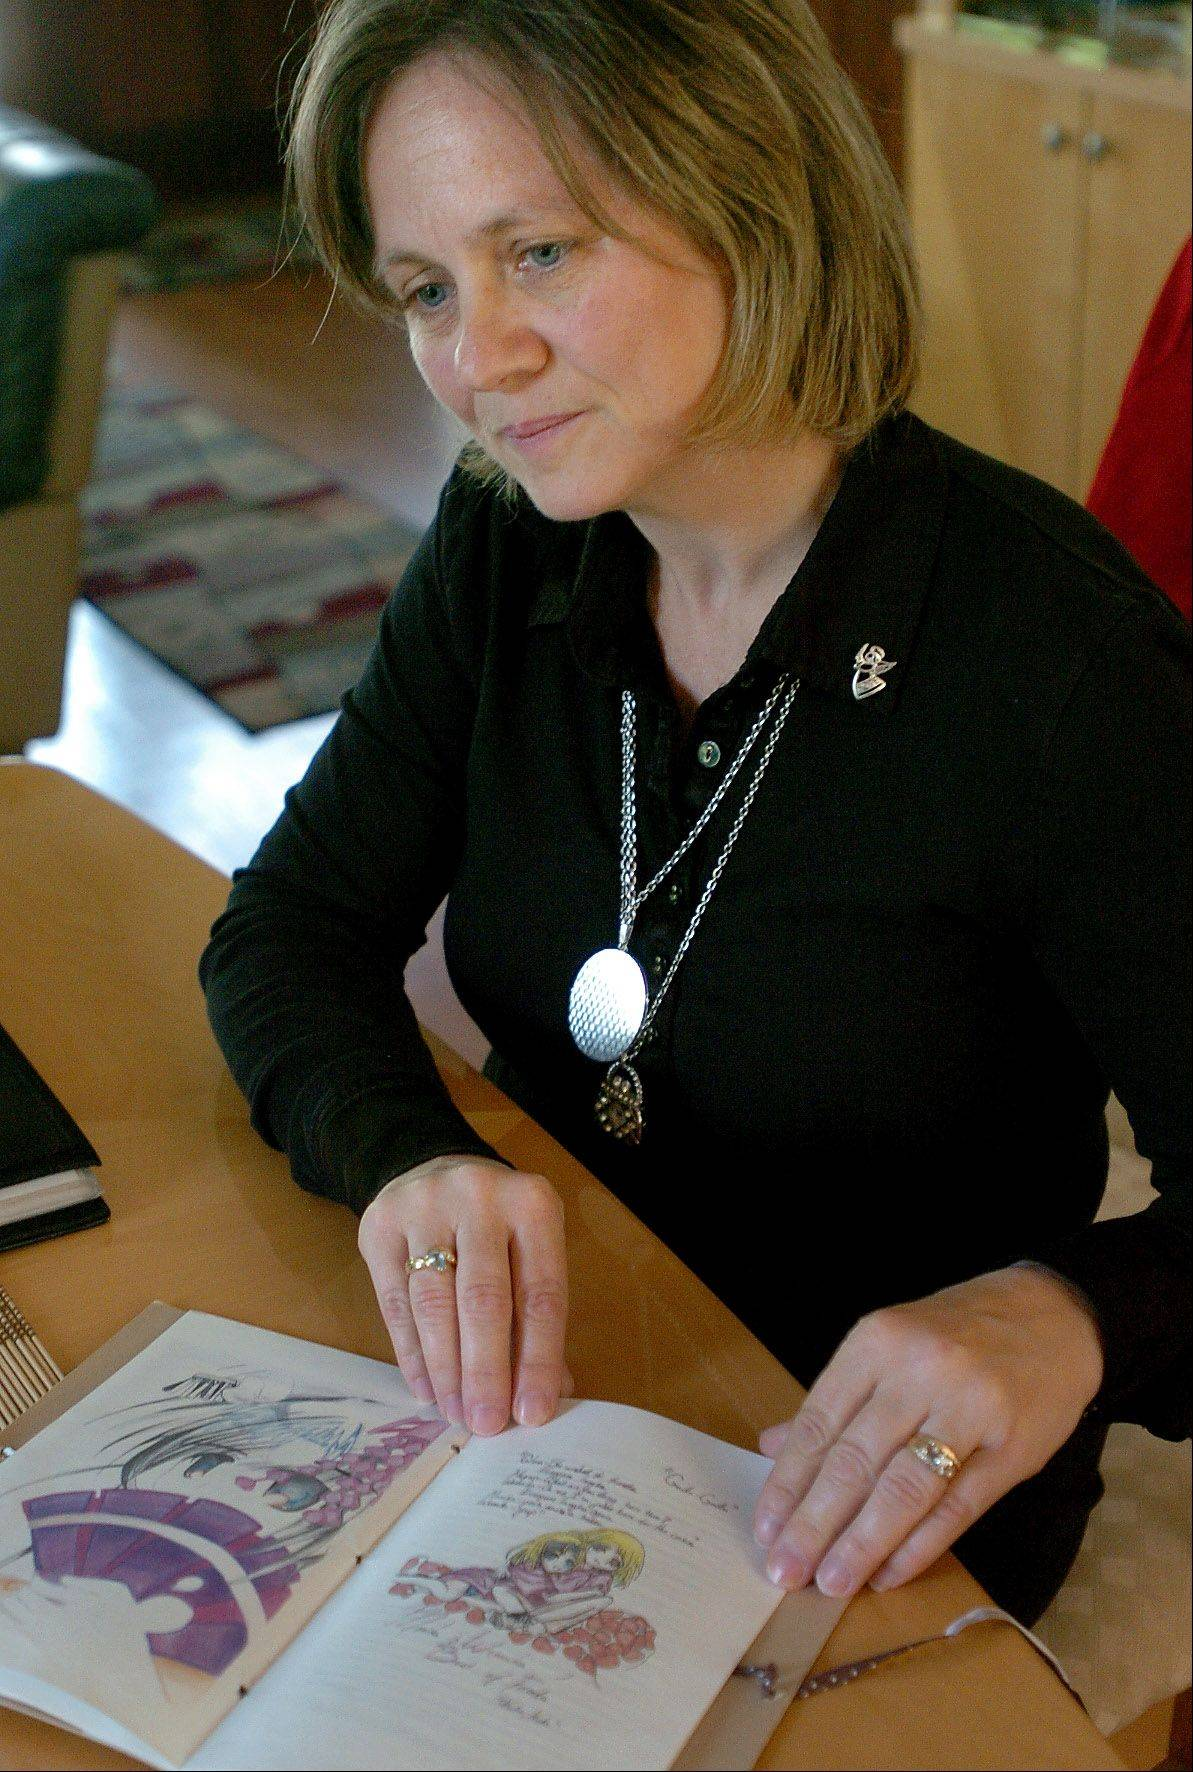 Margaret Skrzypkowski looks through a book made up of her daughter Monika's drawings.